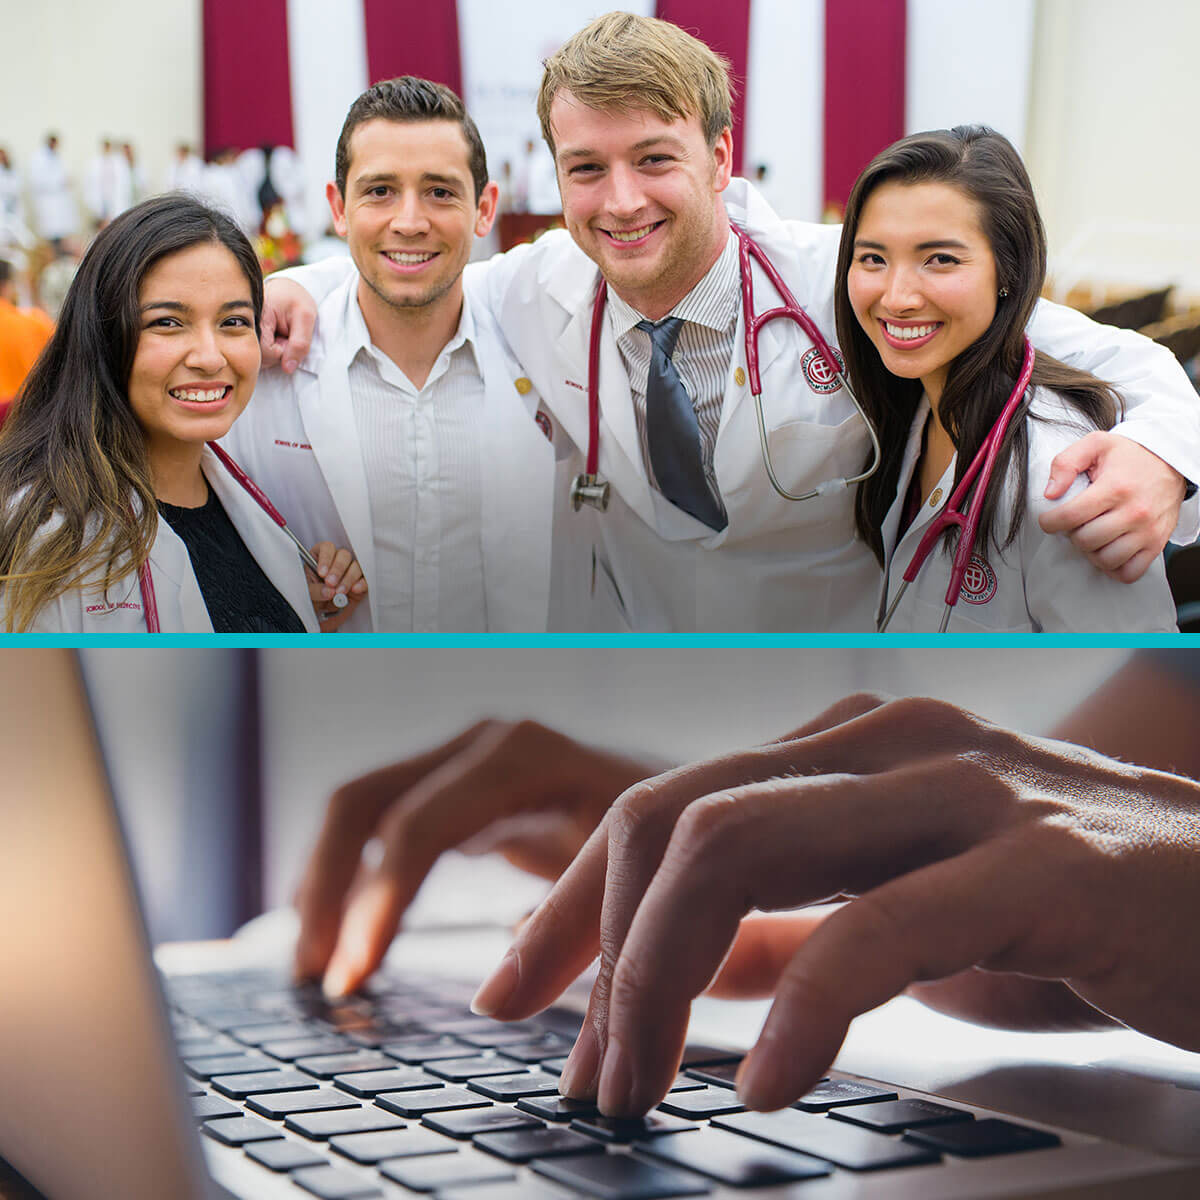 Split image of smiling SGU medical students and close-up of hands typing on laptop.